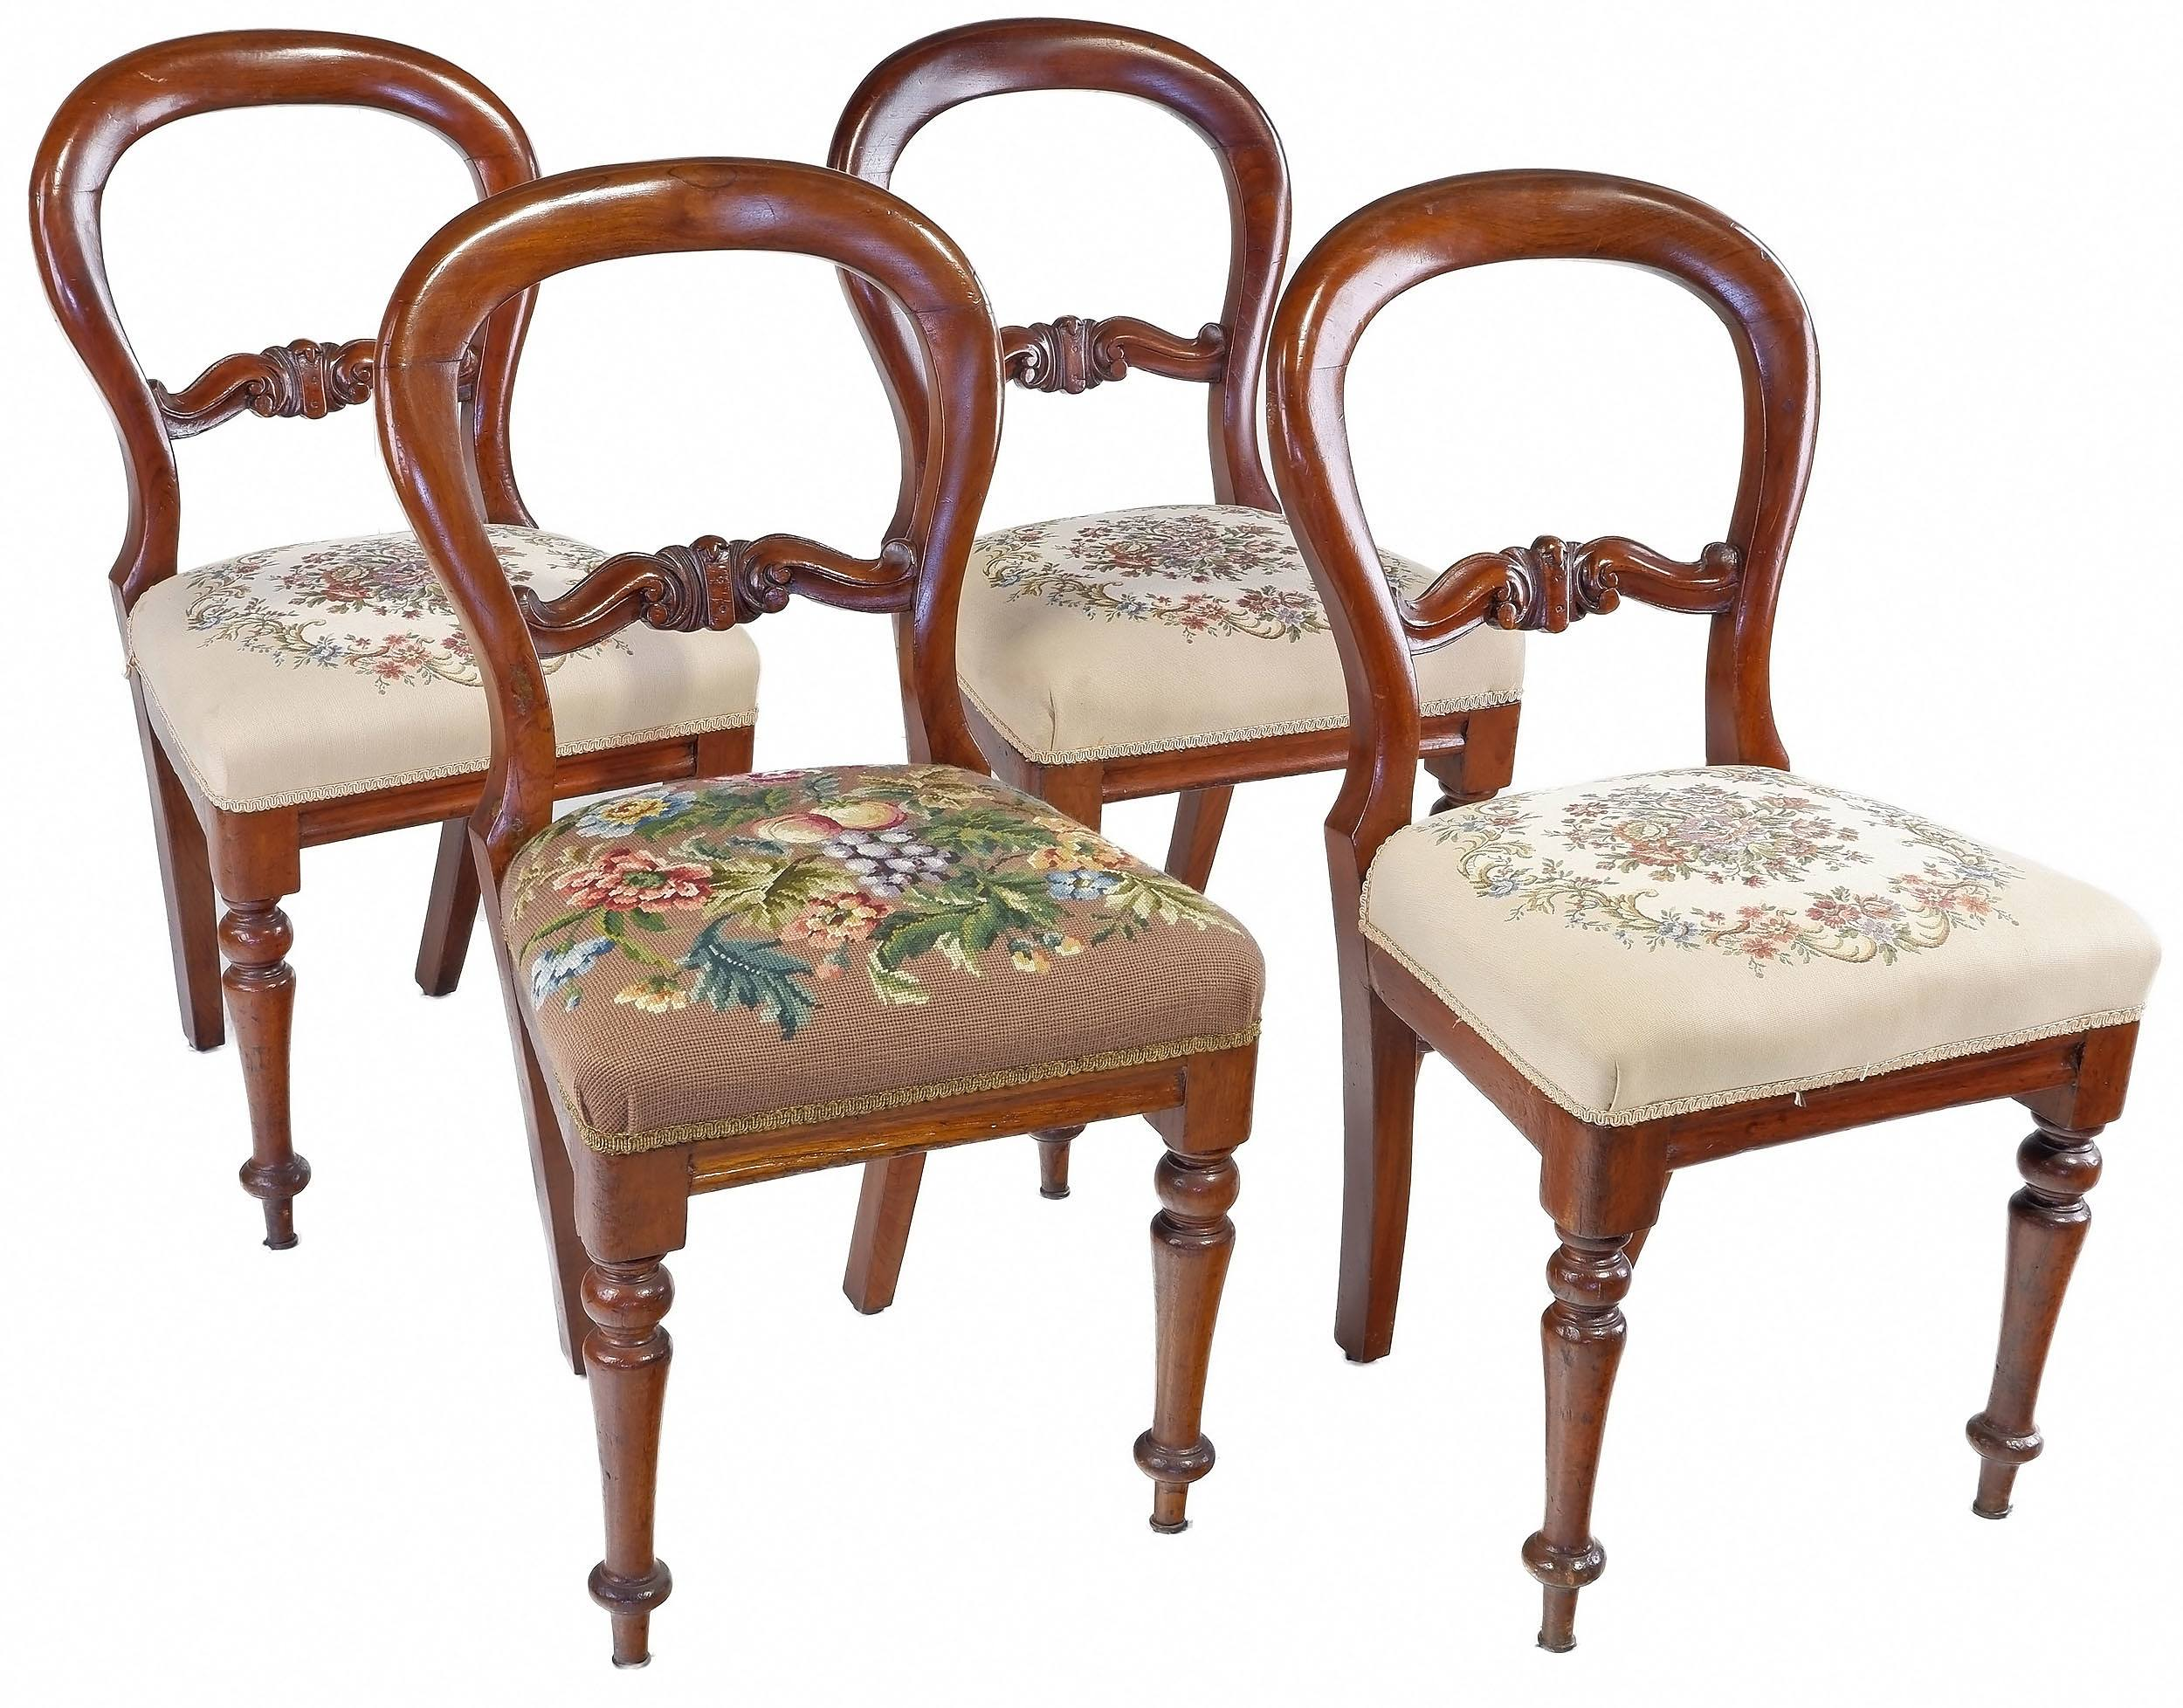 'Four Australian Cedar Balloon Back Chairs Late 19th Century'